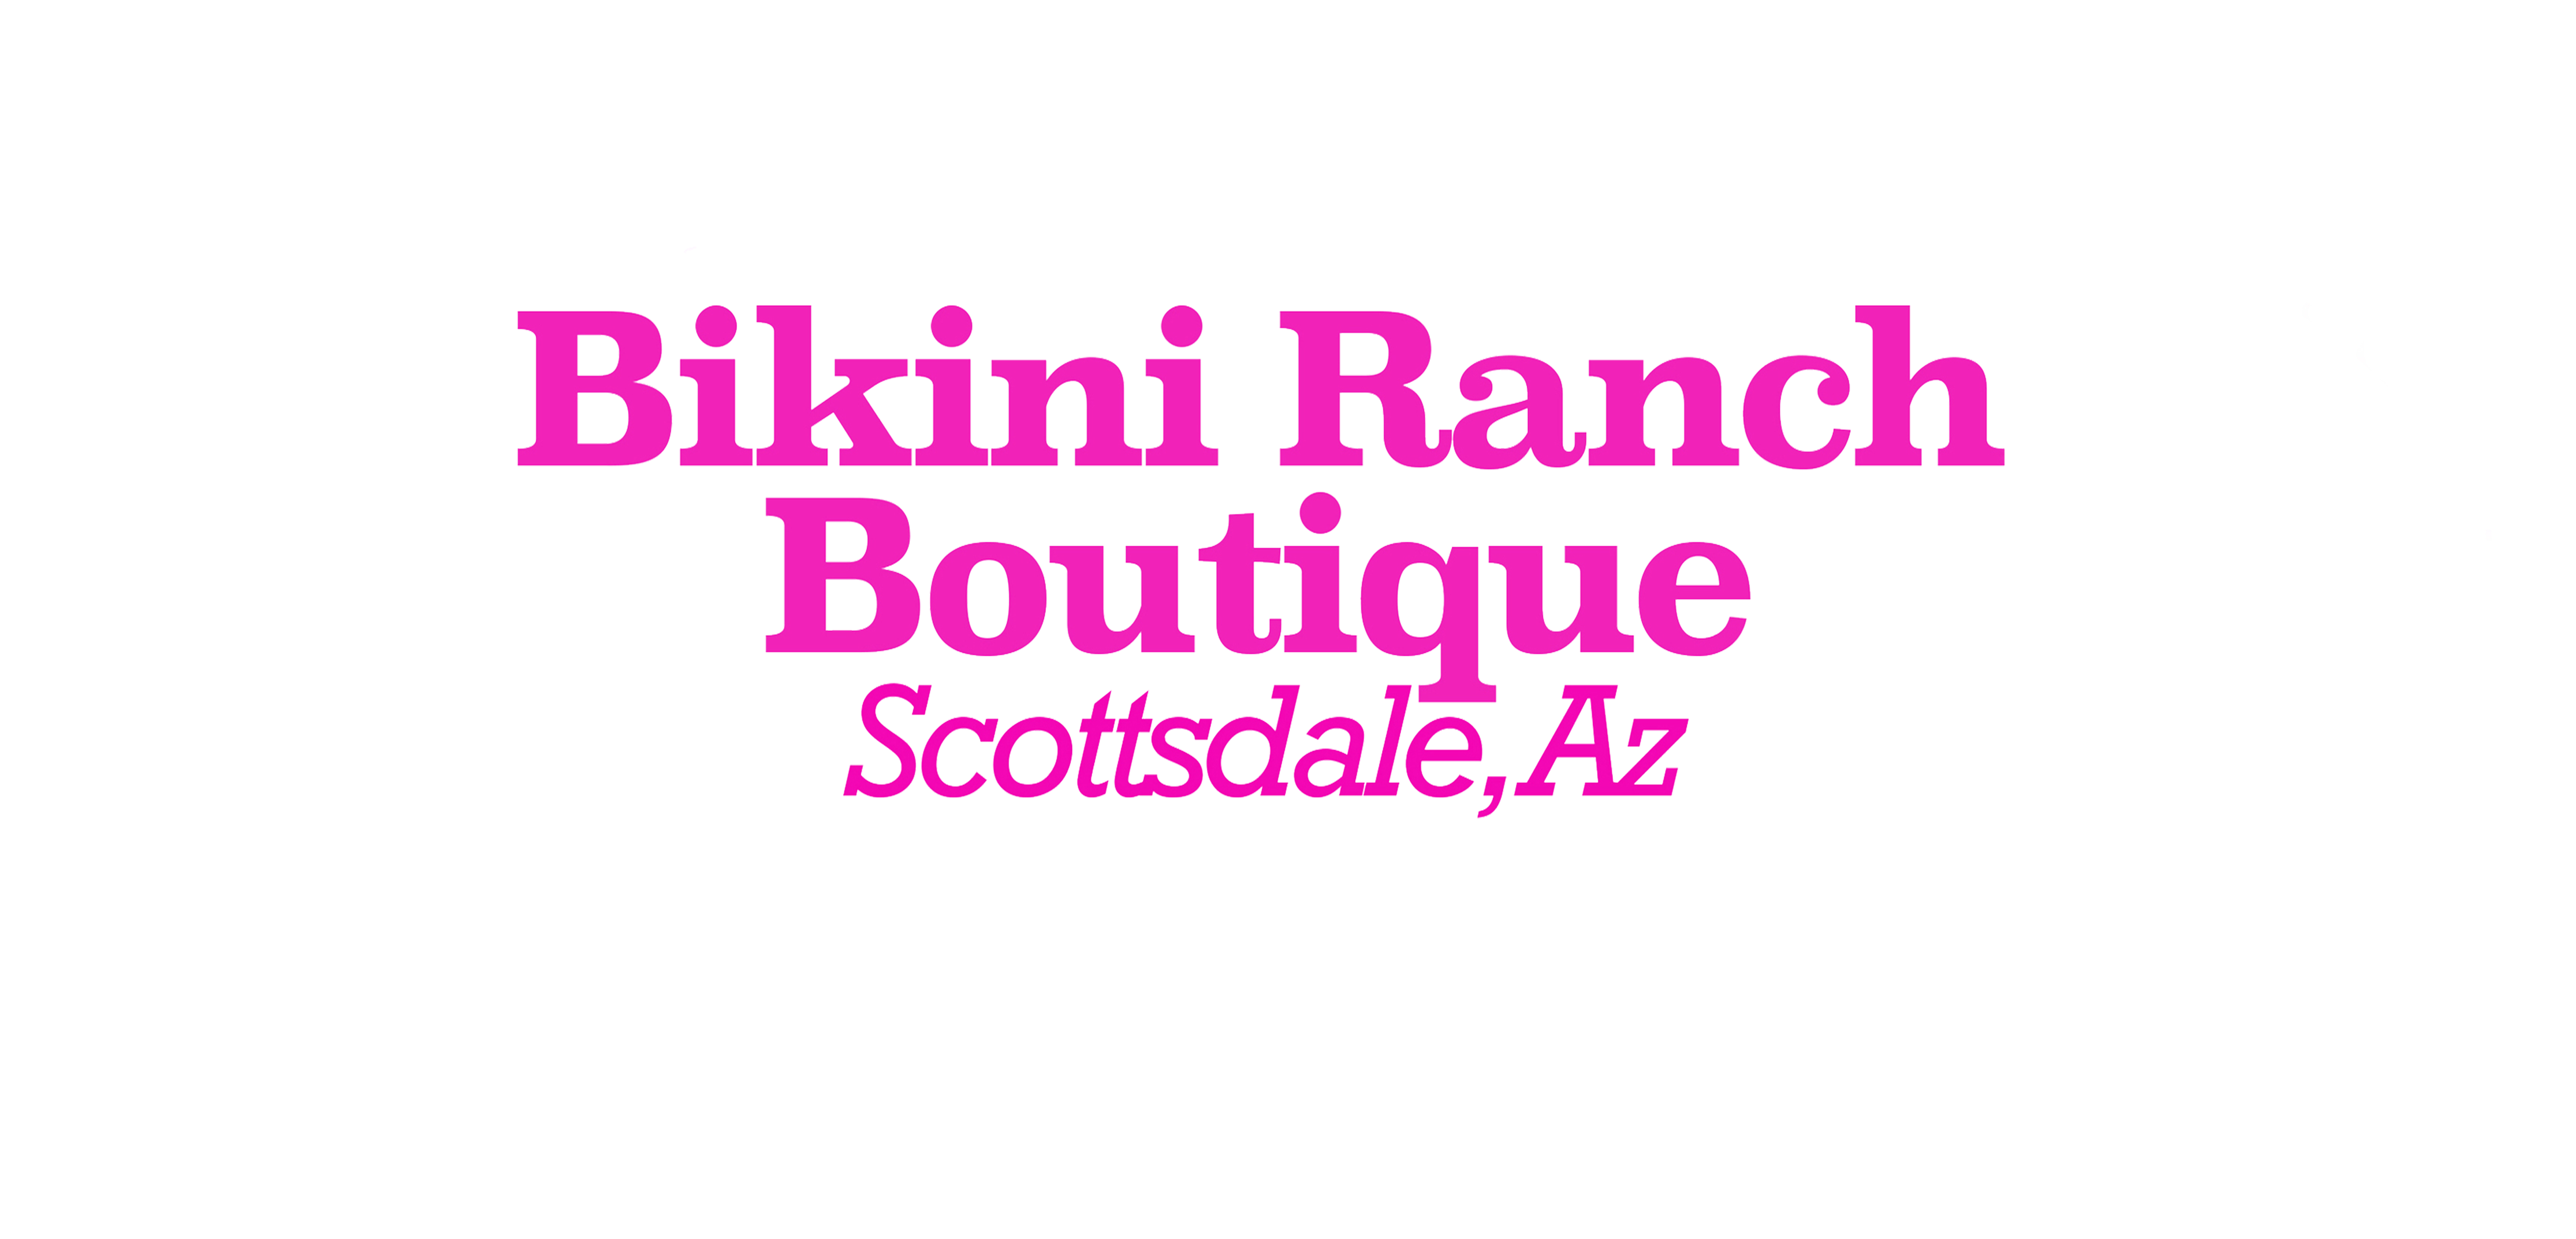 Bikini Ranch Boutique